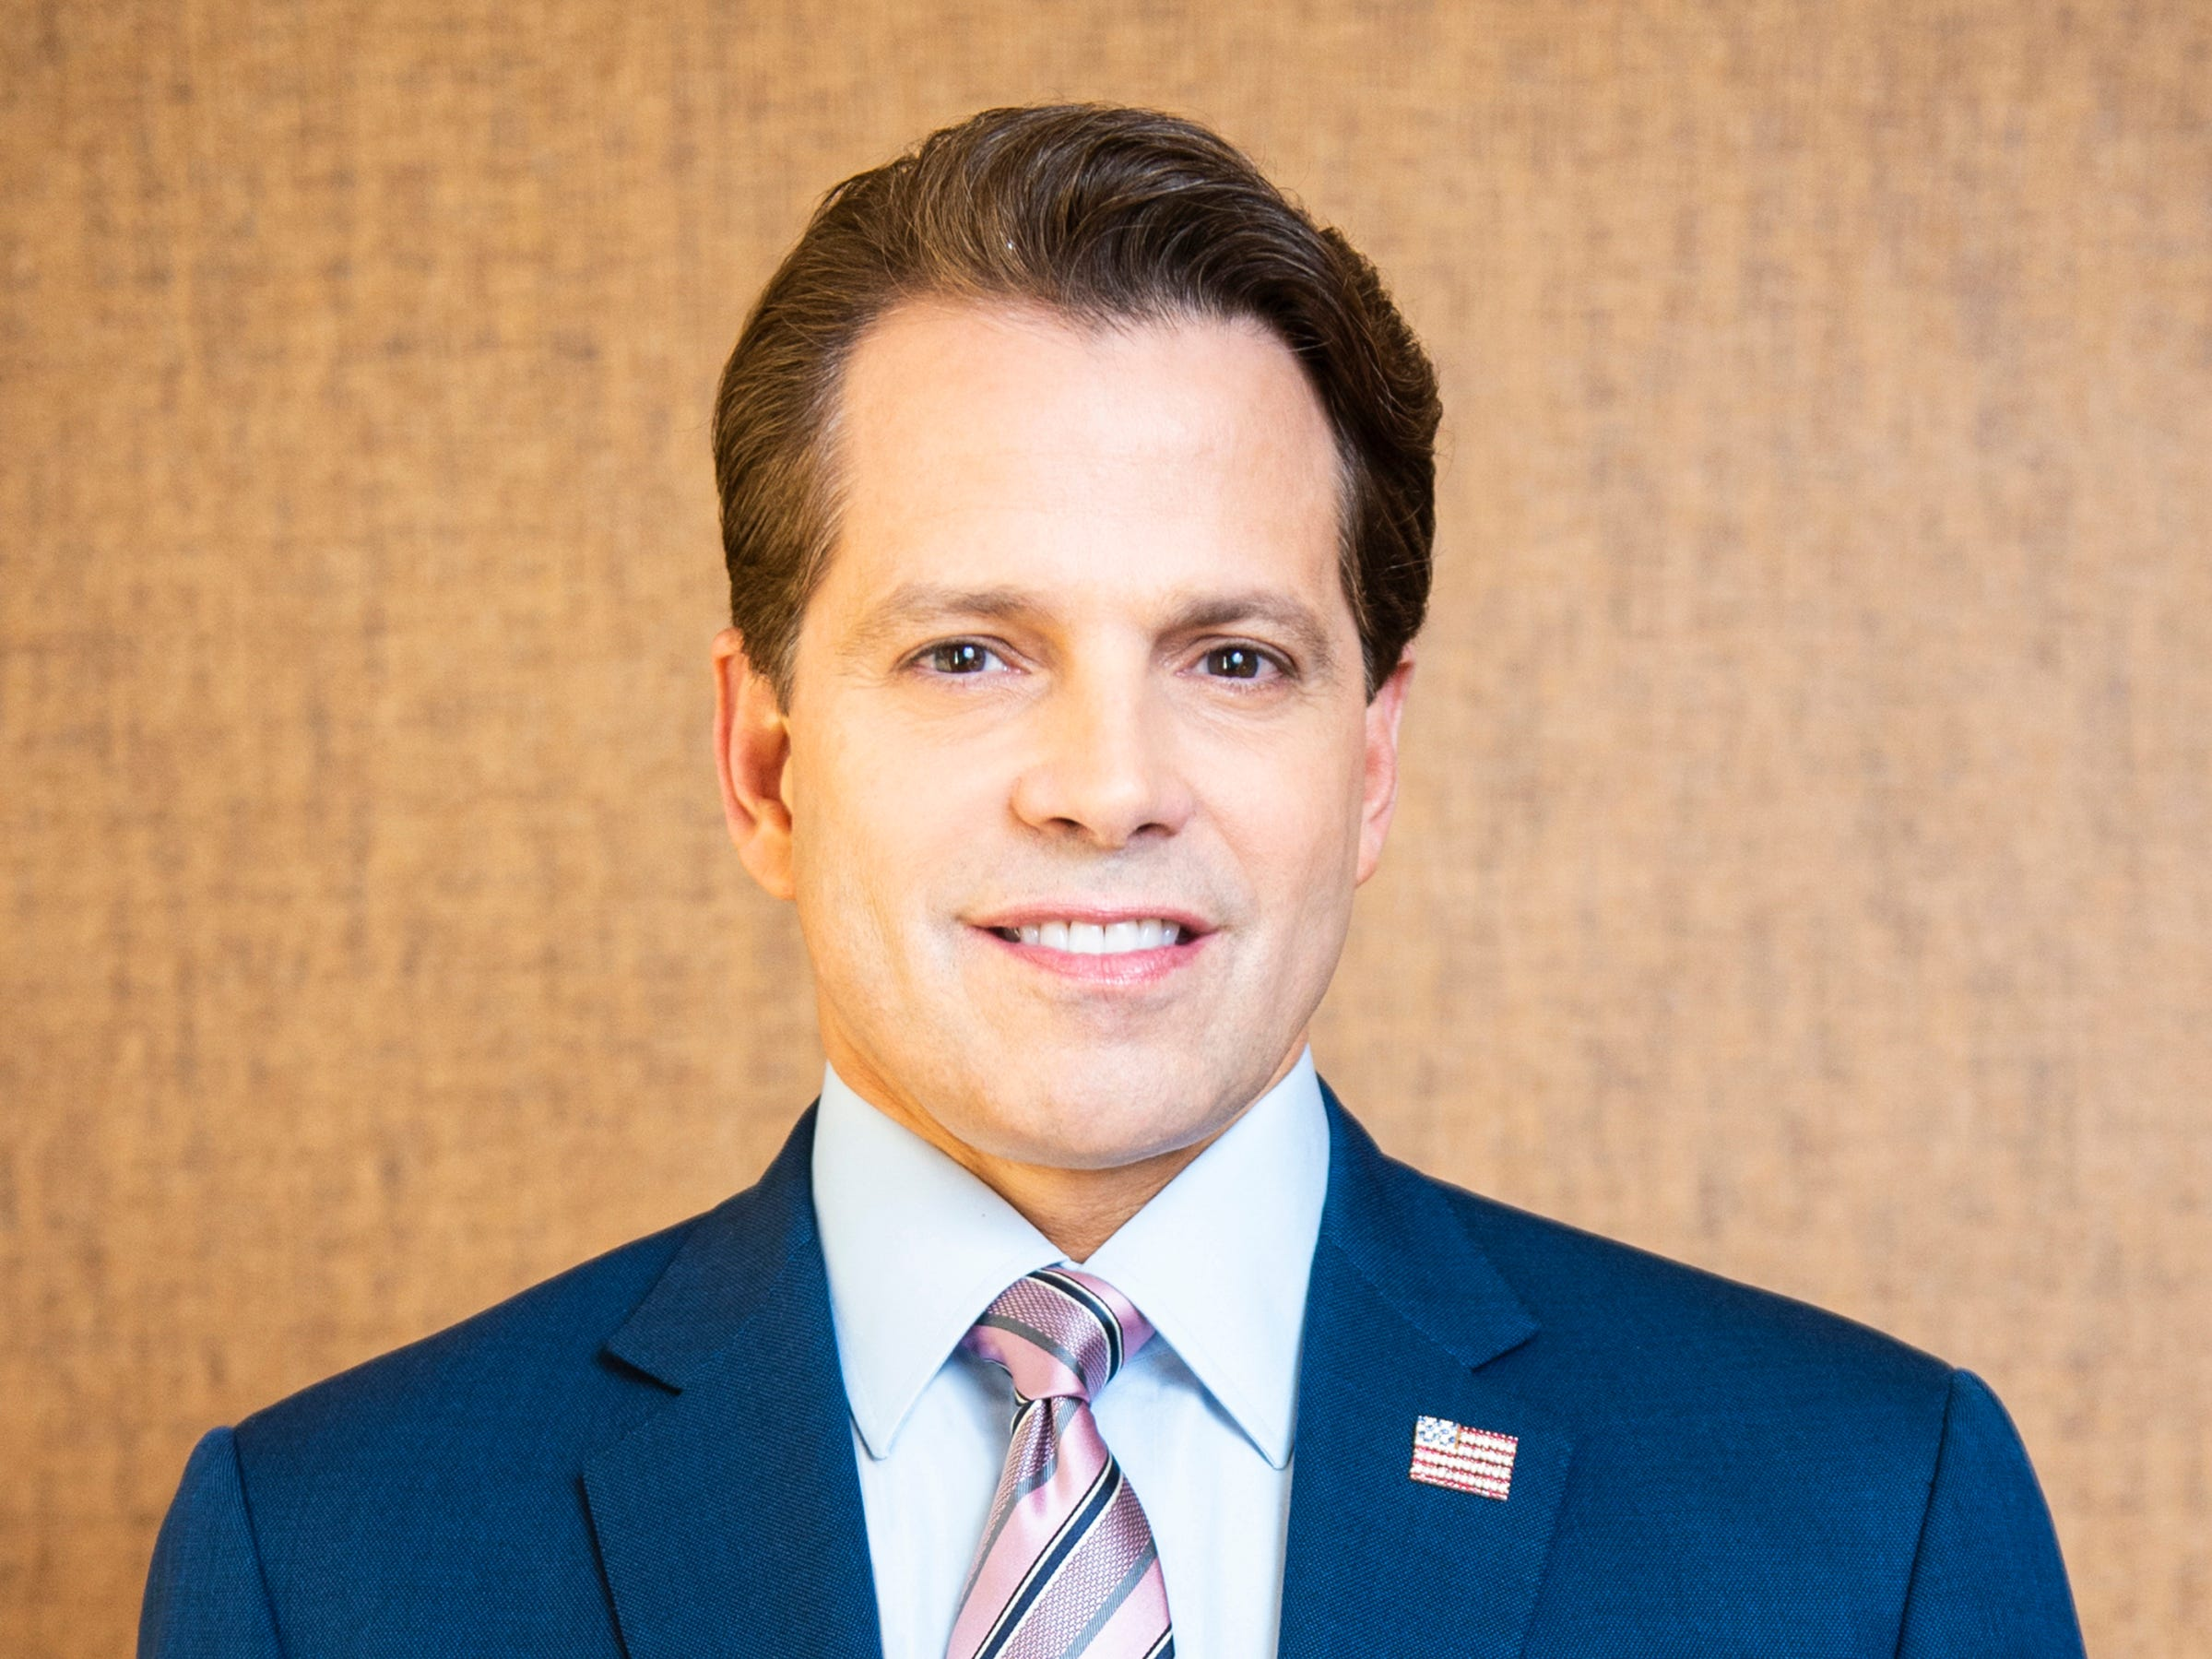 Anthony Scaramucci to participate in the second season of BIG BROTHER: CELEBRITY EDITION. BIG BROTHER: CELEBRITY EDITION launches with a two-night premiere event Monday, Jan. 21 (8:00-9:00 PM, ET/PT) and Tuesday, Jan. 22 (8:00-9:00 PM, ET/PT) on the CBS Television Network.  Photo: Mary Kouw/CBS ©2019 CBS Broadcasting, Inc. All Rights Reserved